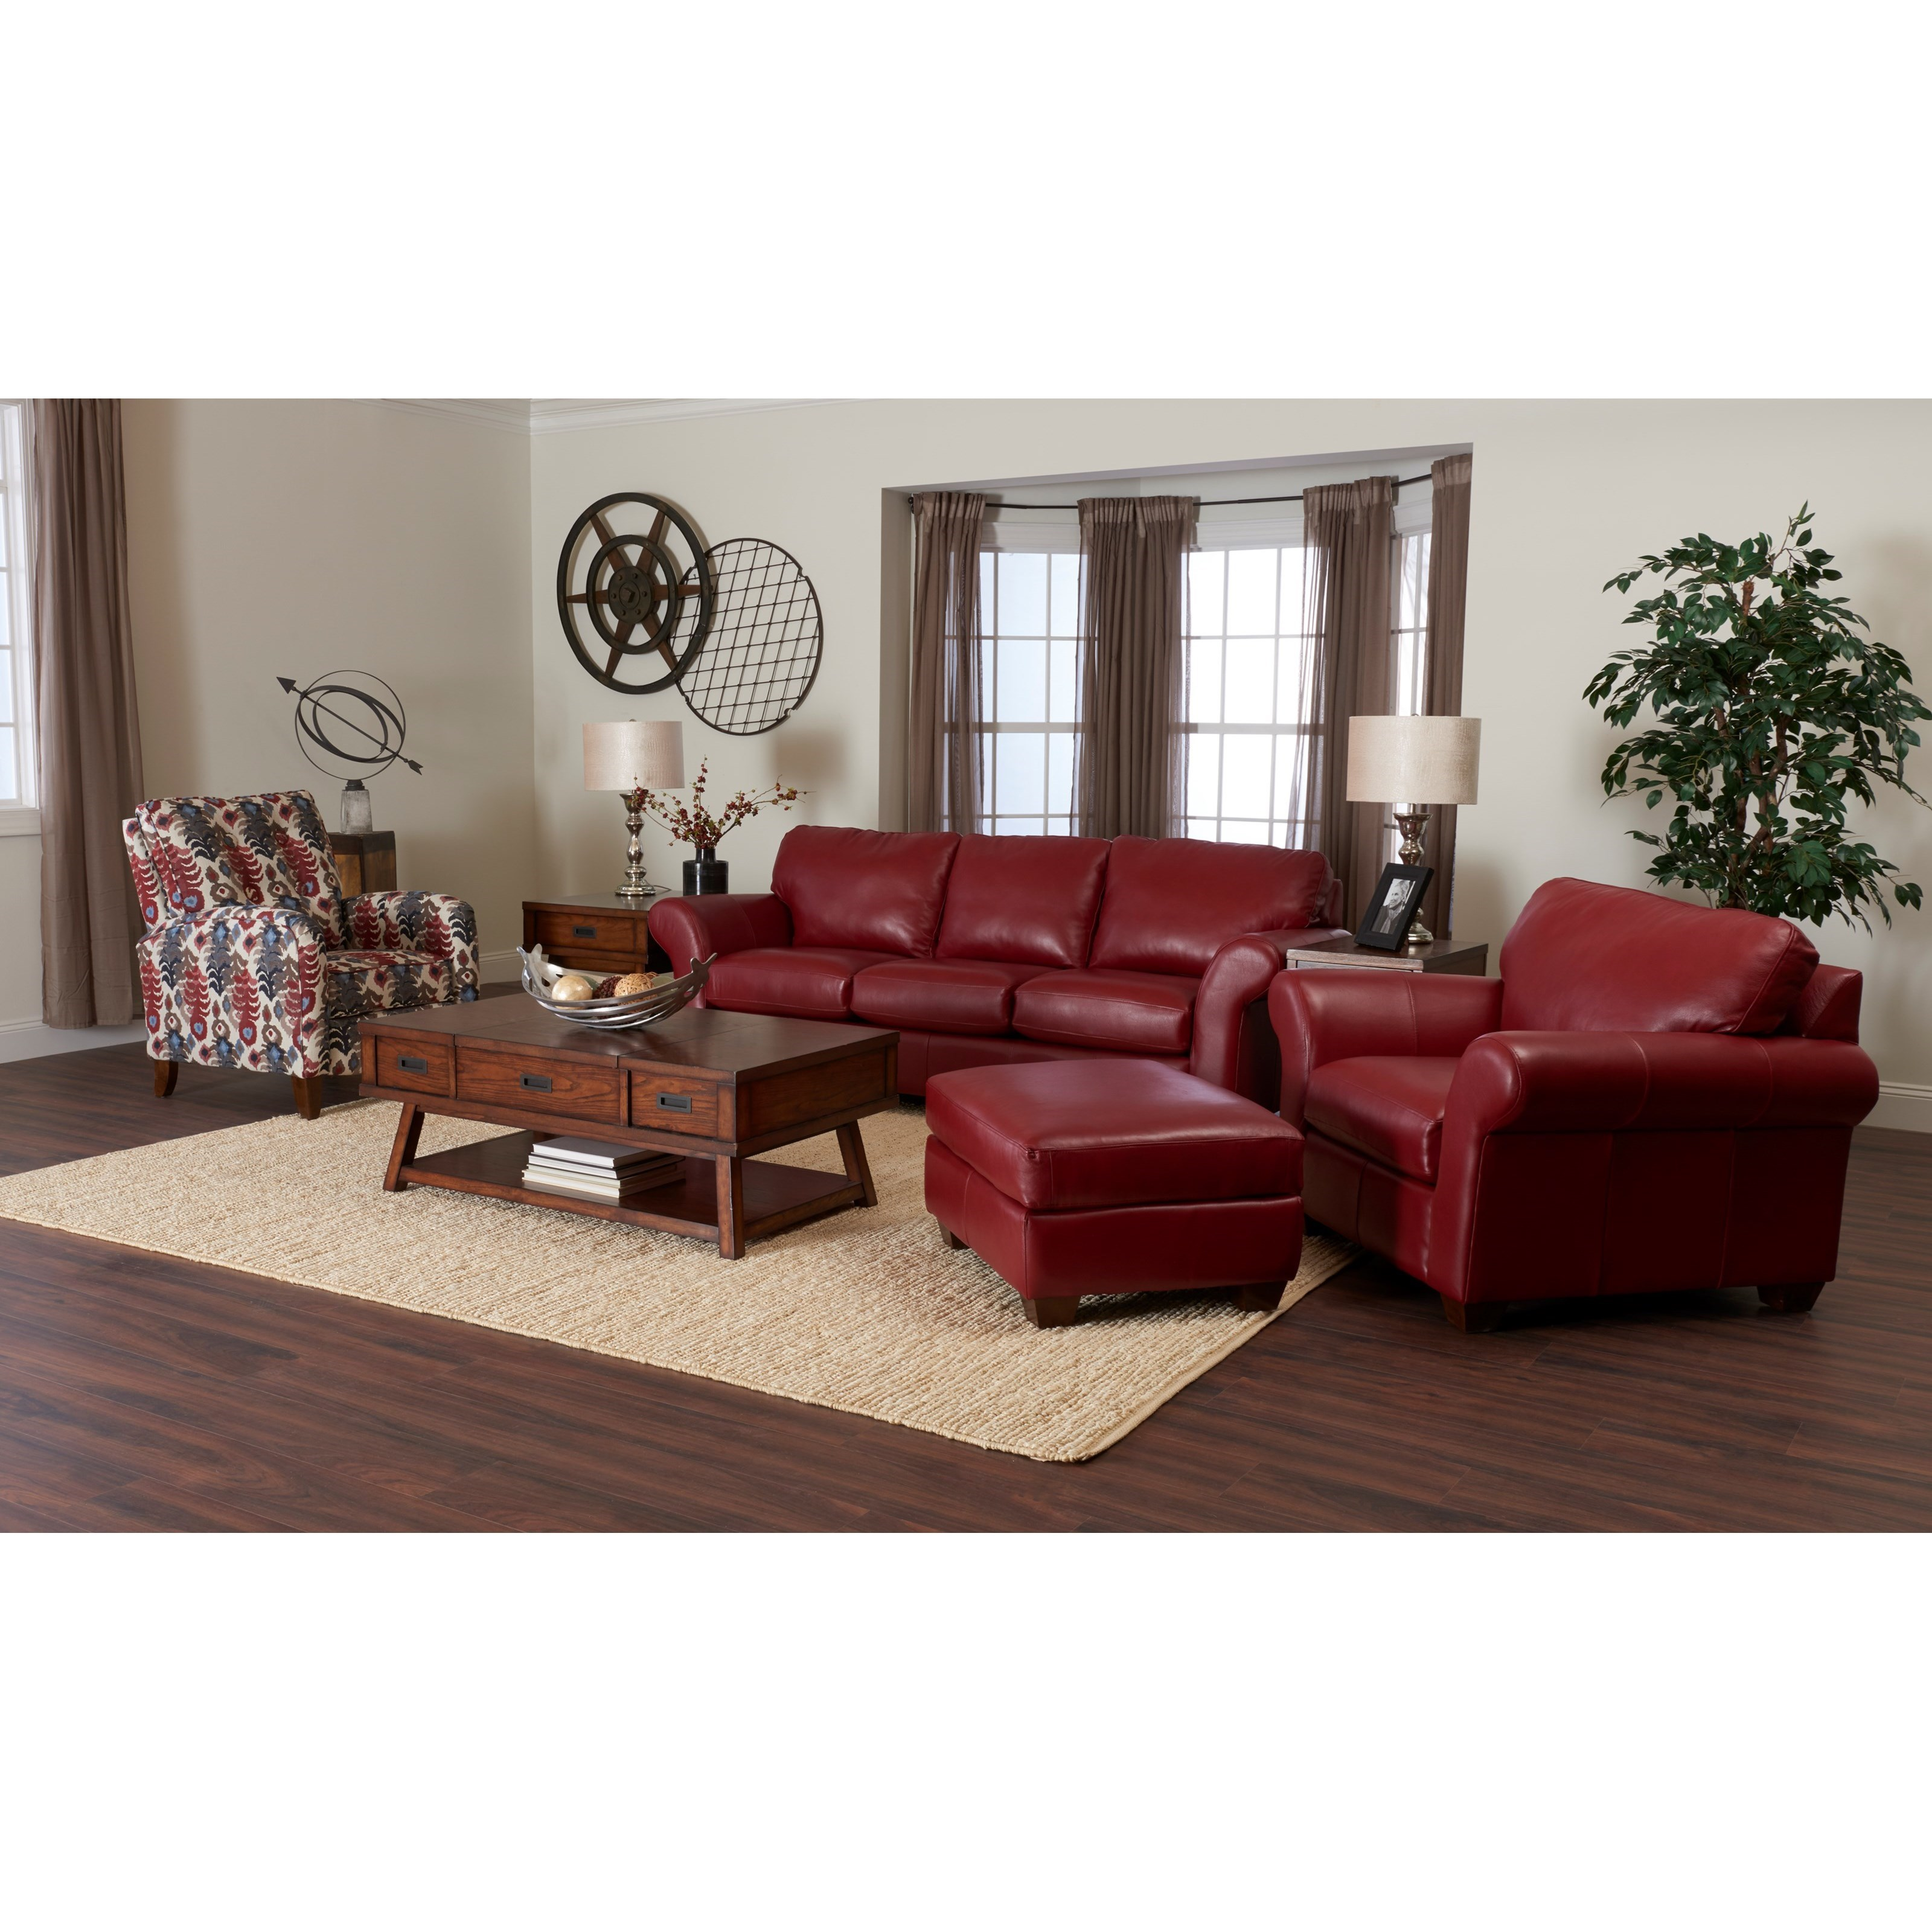 Moorland Living Room Group by Klaussner at Northeast Factory Direct